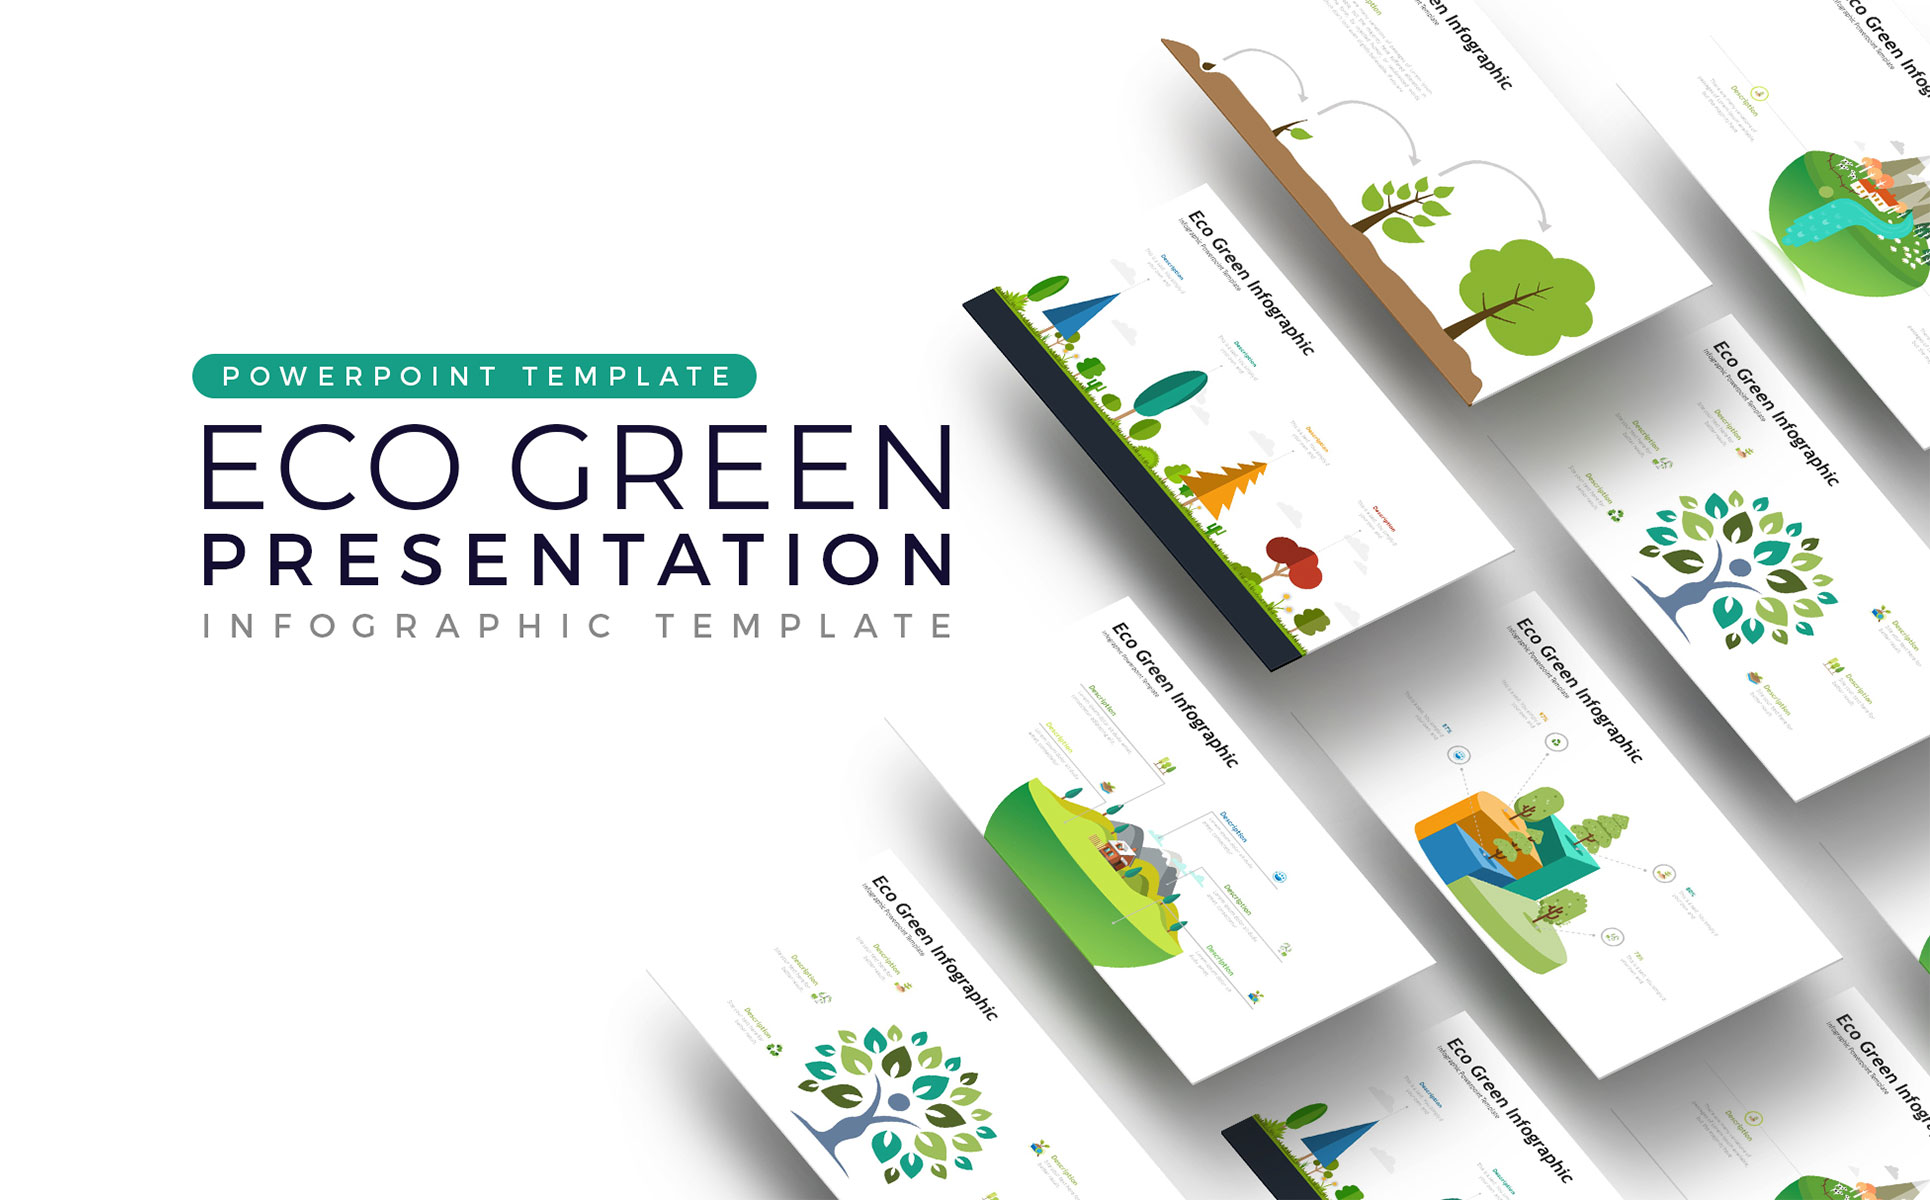 Eco Presentation - Infographic PowerPoint Template